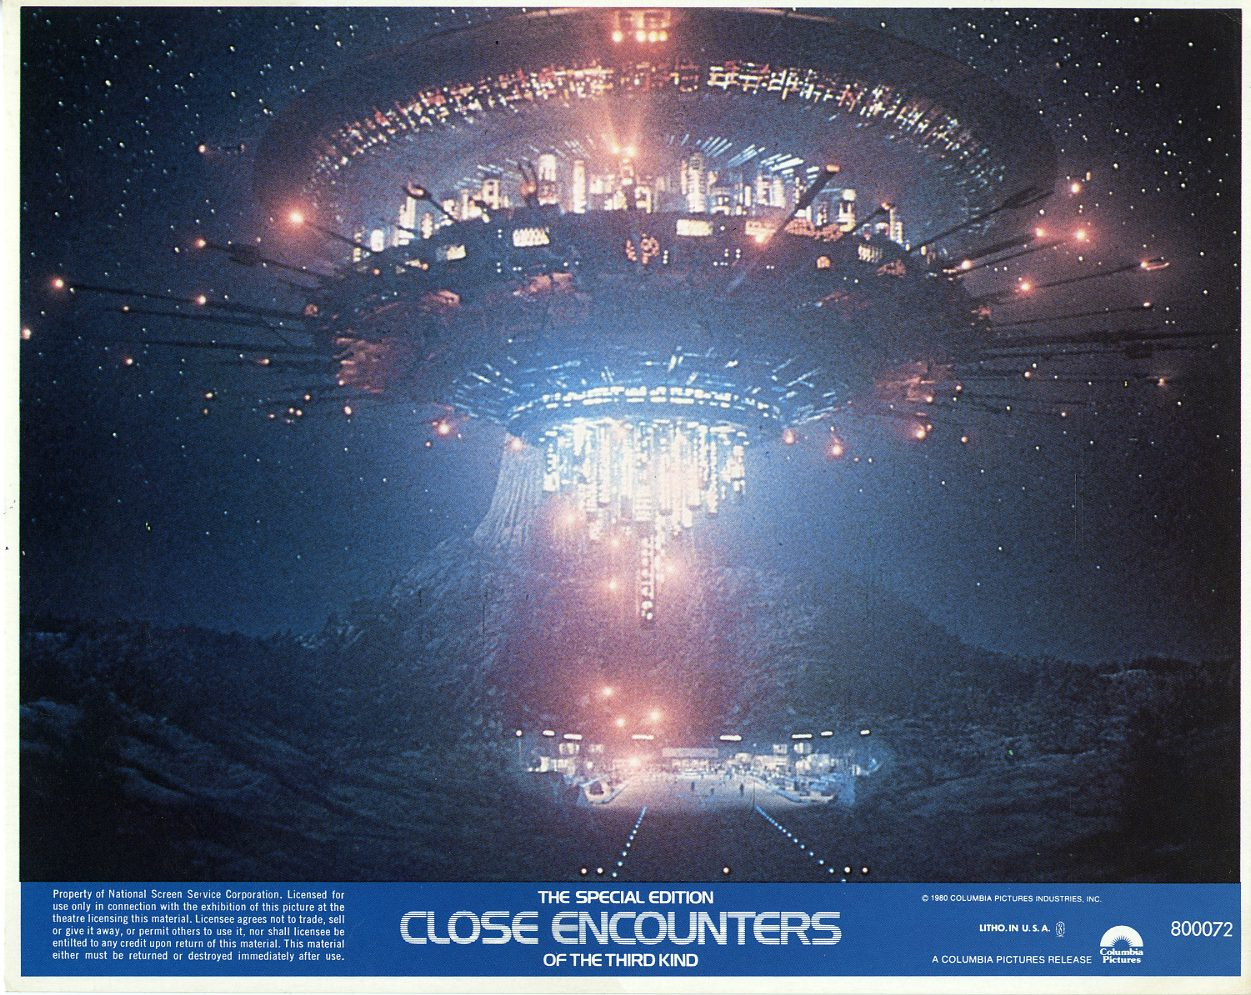 CLOSE ENCOUNTERS OF THE THIRD